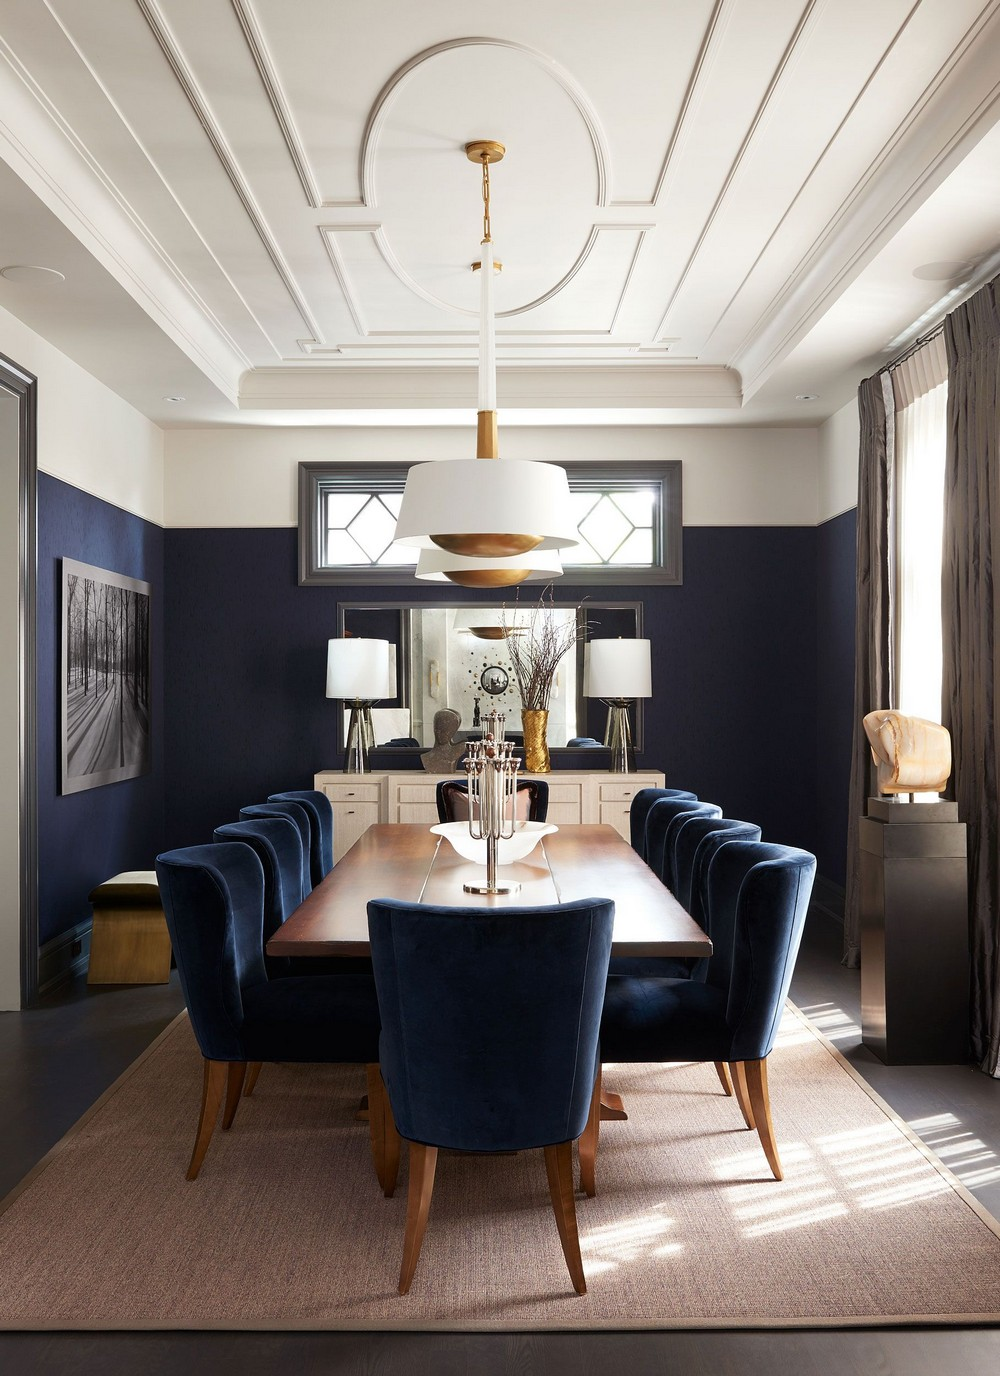 A Classic Style For Modern Luxury: Dining Rooms by Elizabeth Metcalfe elizabeth metcalfe A Classic Style For Modern Luxury: Dining Rooms by Elizabeth Metcalfe 4 pinterest 1